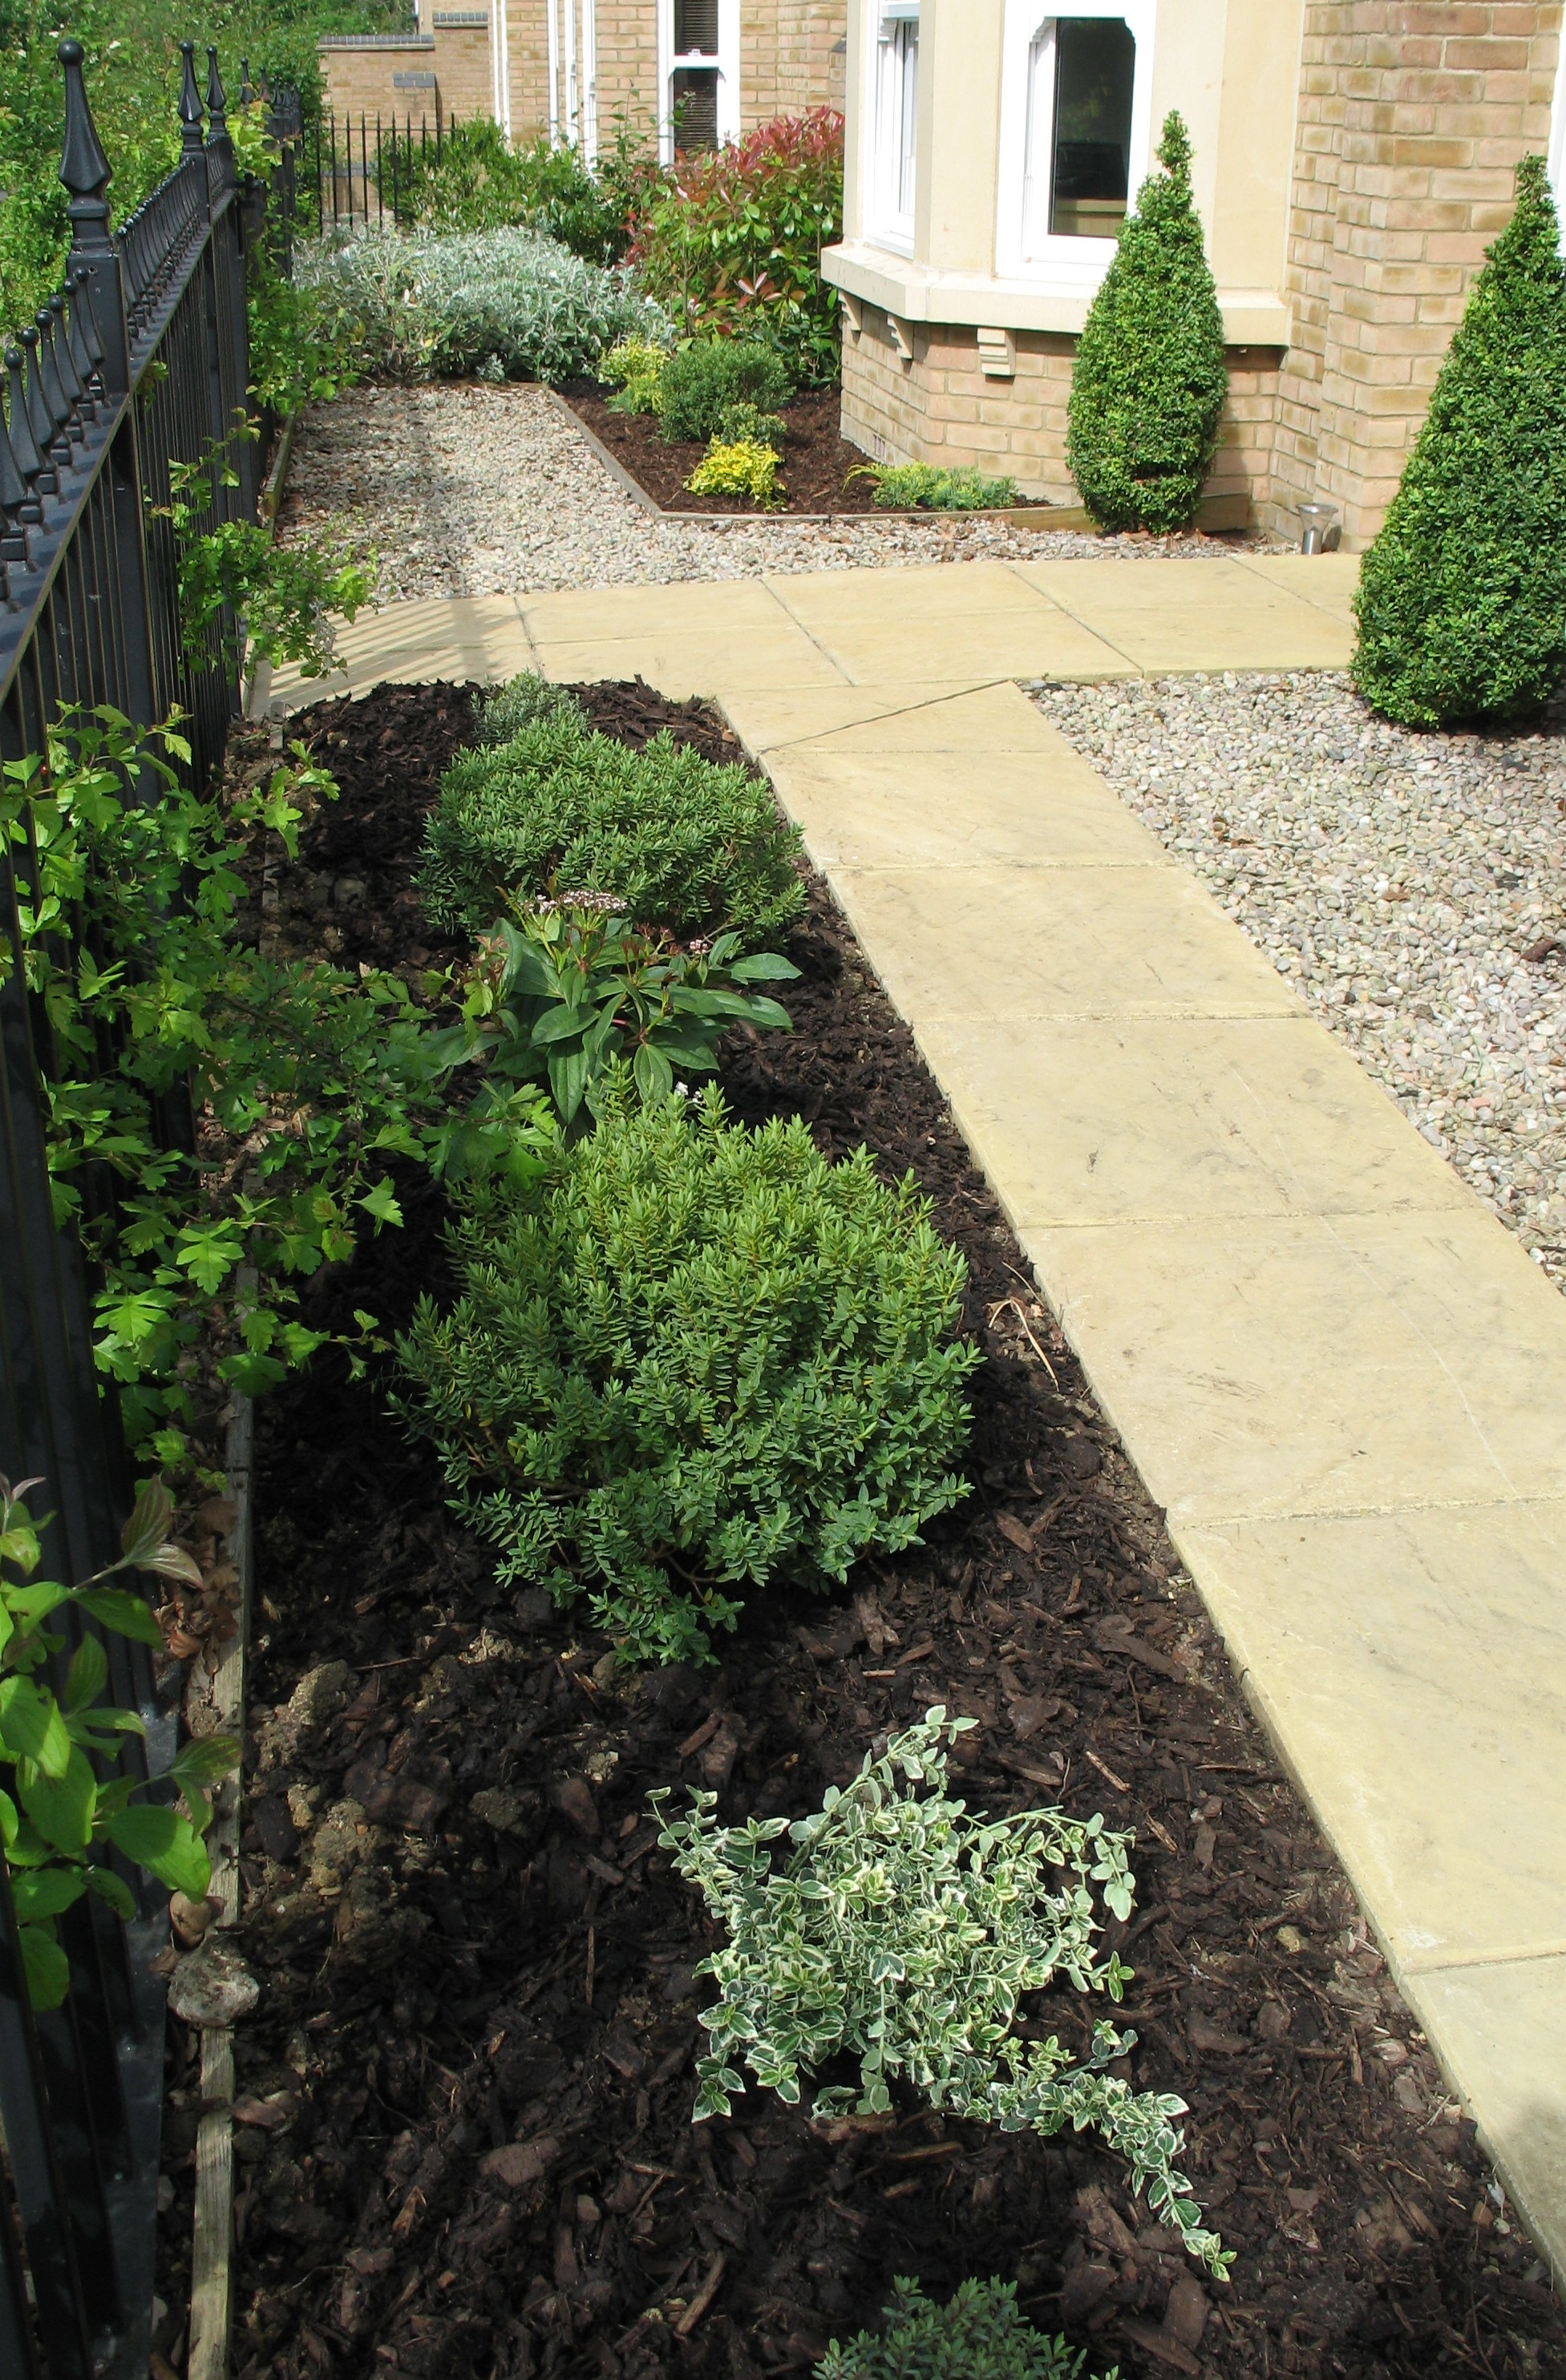 Easy plants for a front garden karen tizzard garden design for Easy care front gardens